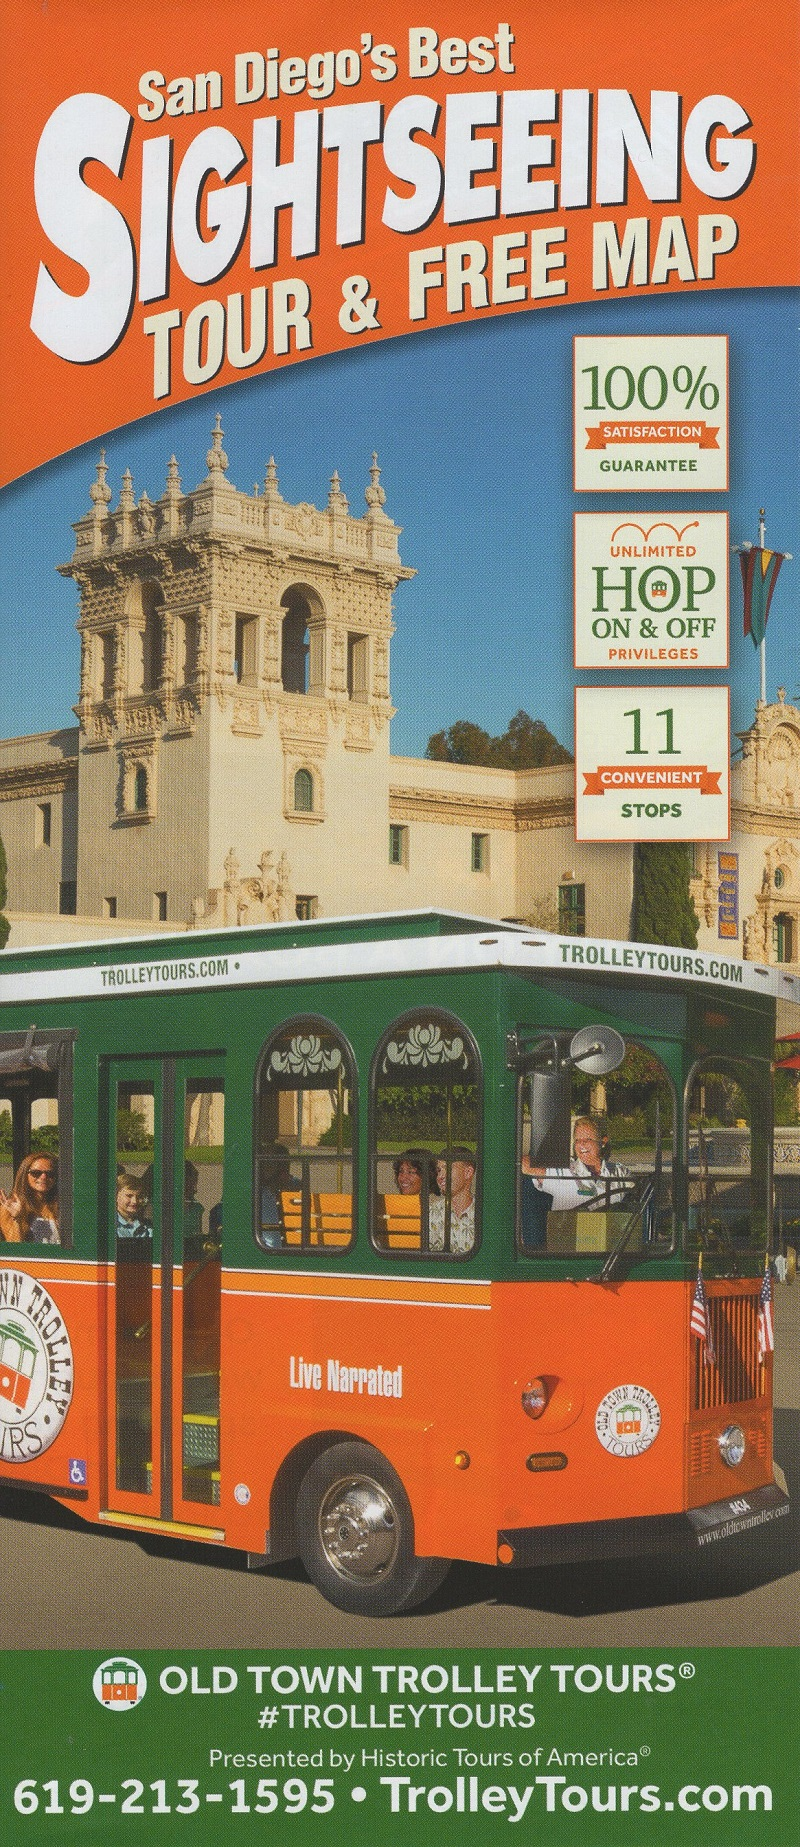 San Diego's Best Sightseeing Tour & Free Map